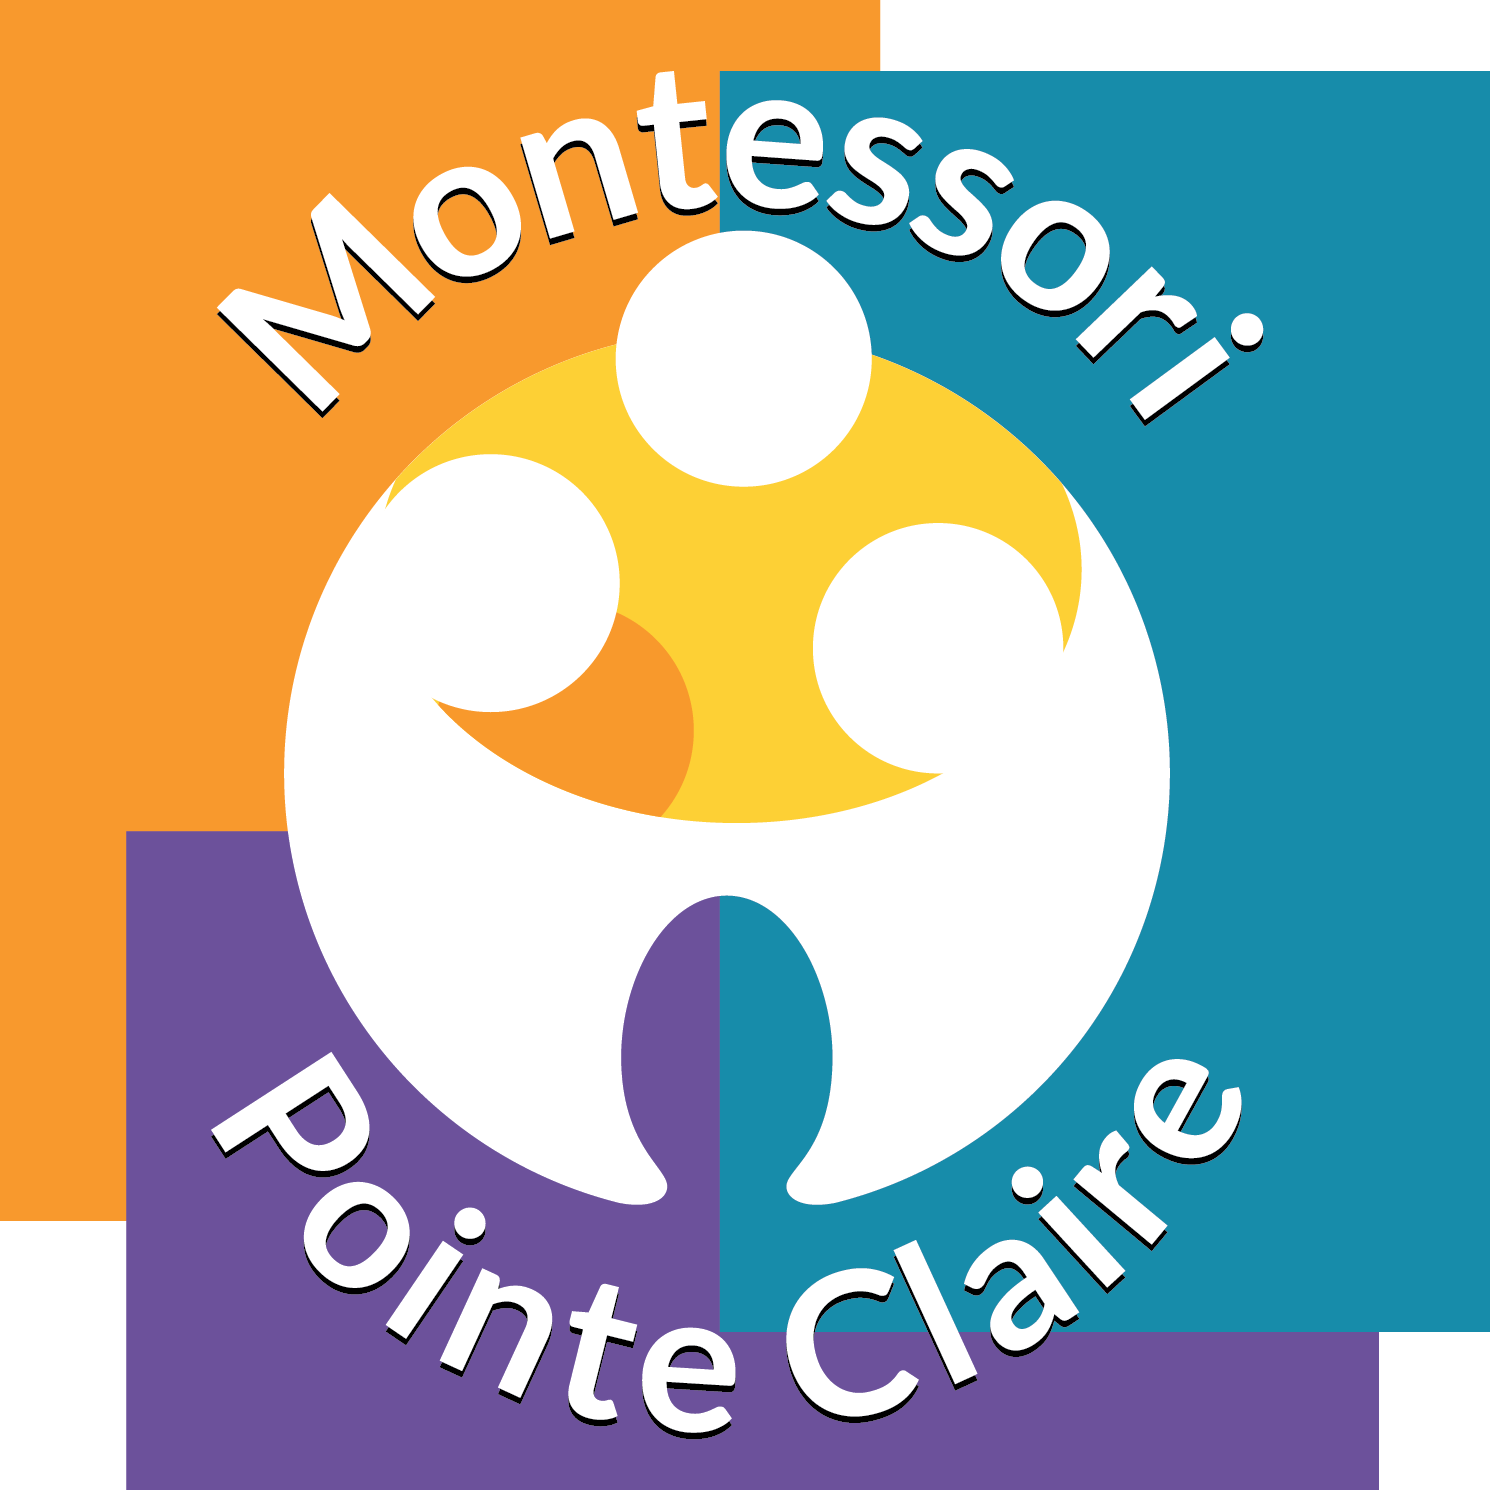 Montessori Pointe Claire